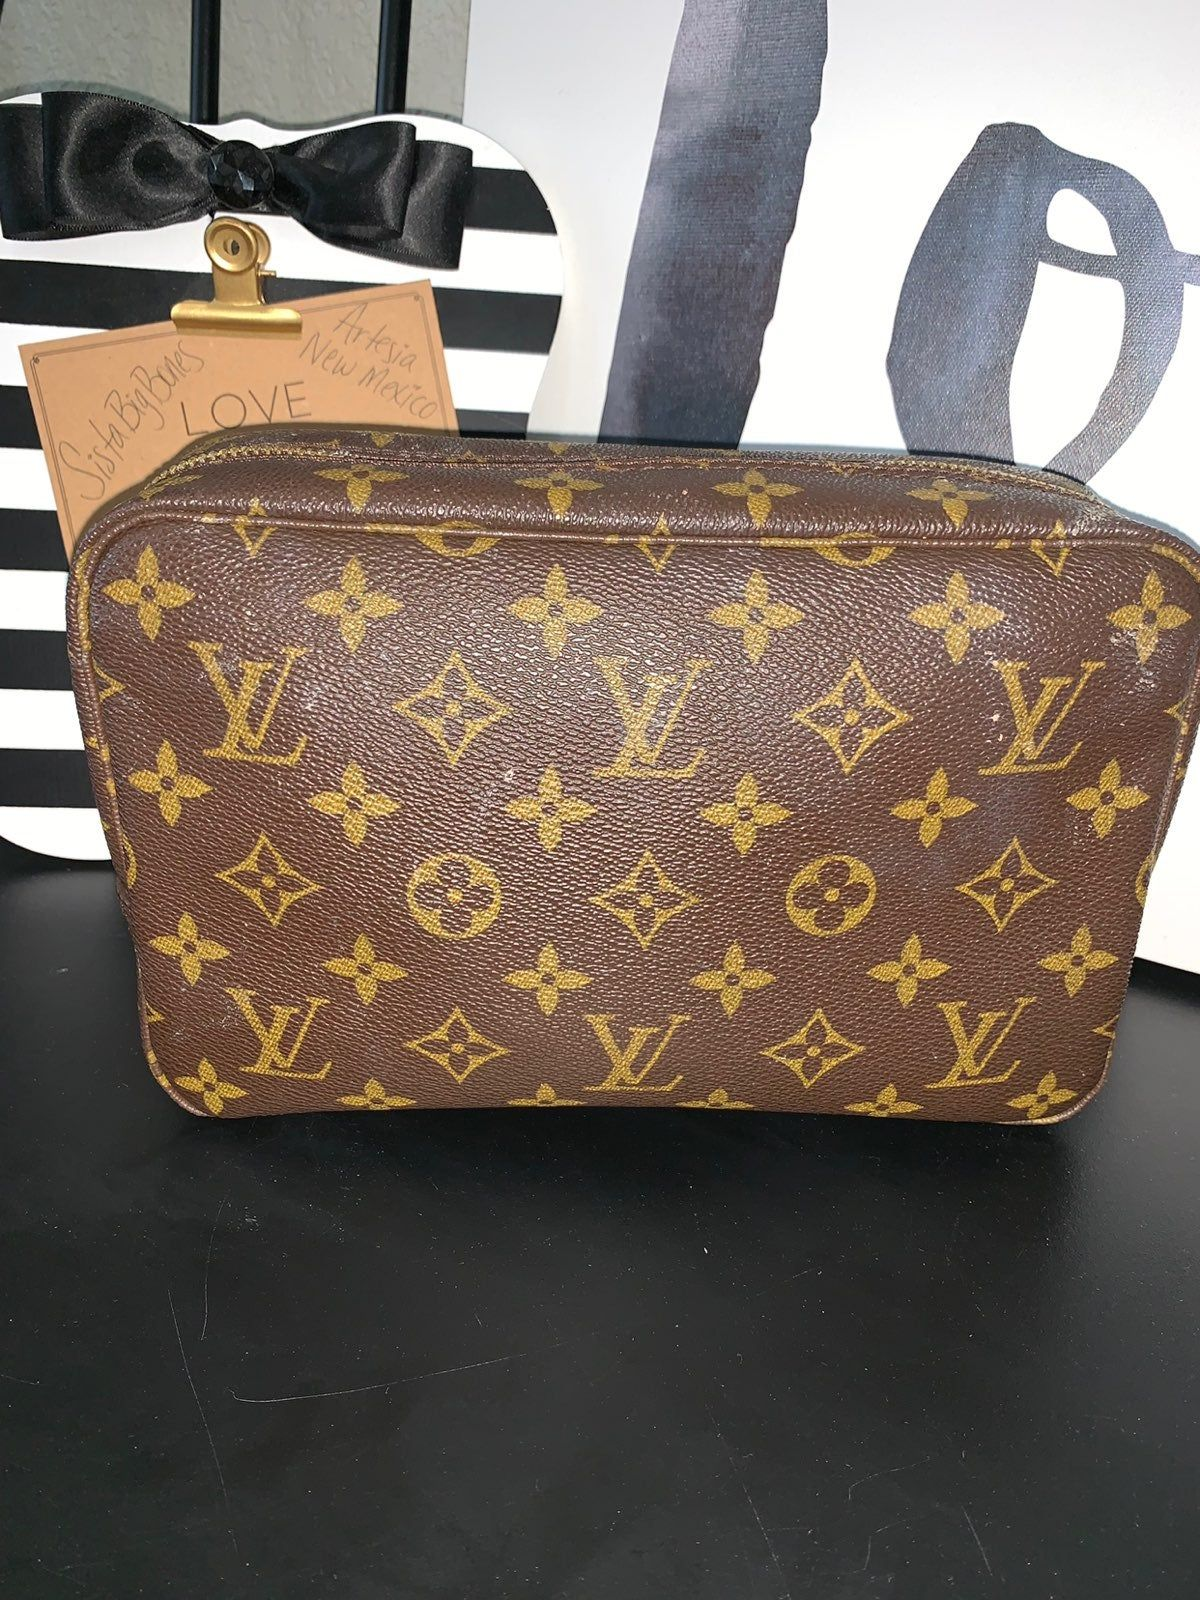 Authentic Heavily Used Louis Vuitton Trousse 23 Sticky And Messy Is What This Trousse Is It Needs Louis Vuitton Cosmetic Bag Used Louis Vuitton Louis Vuitton